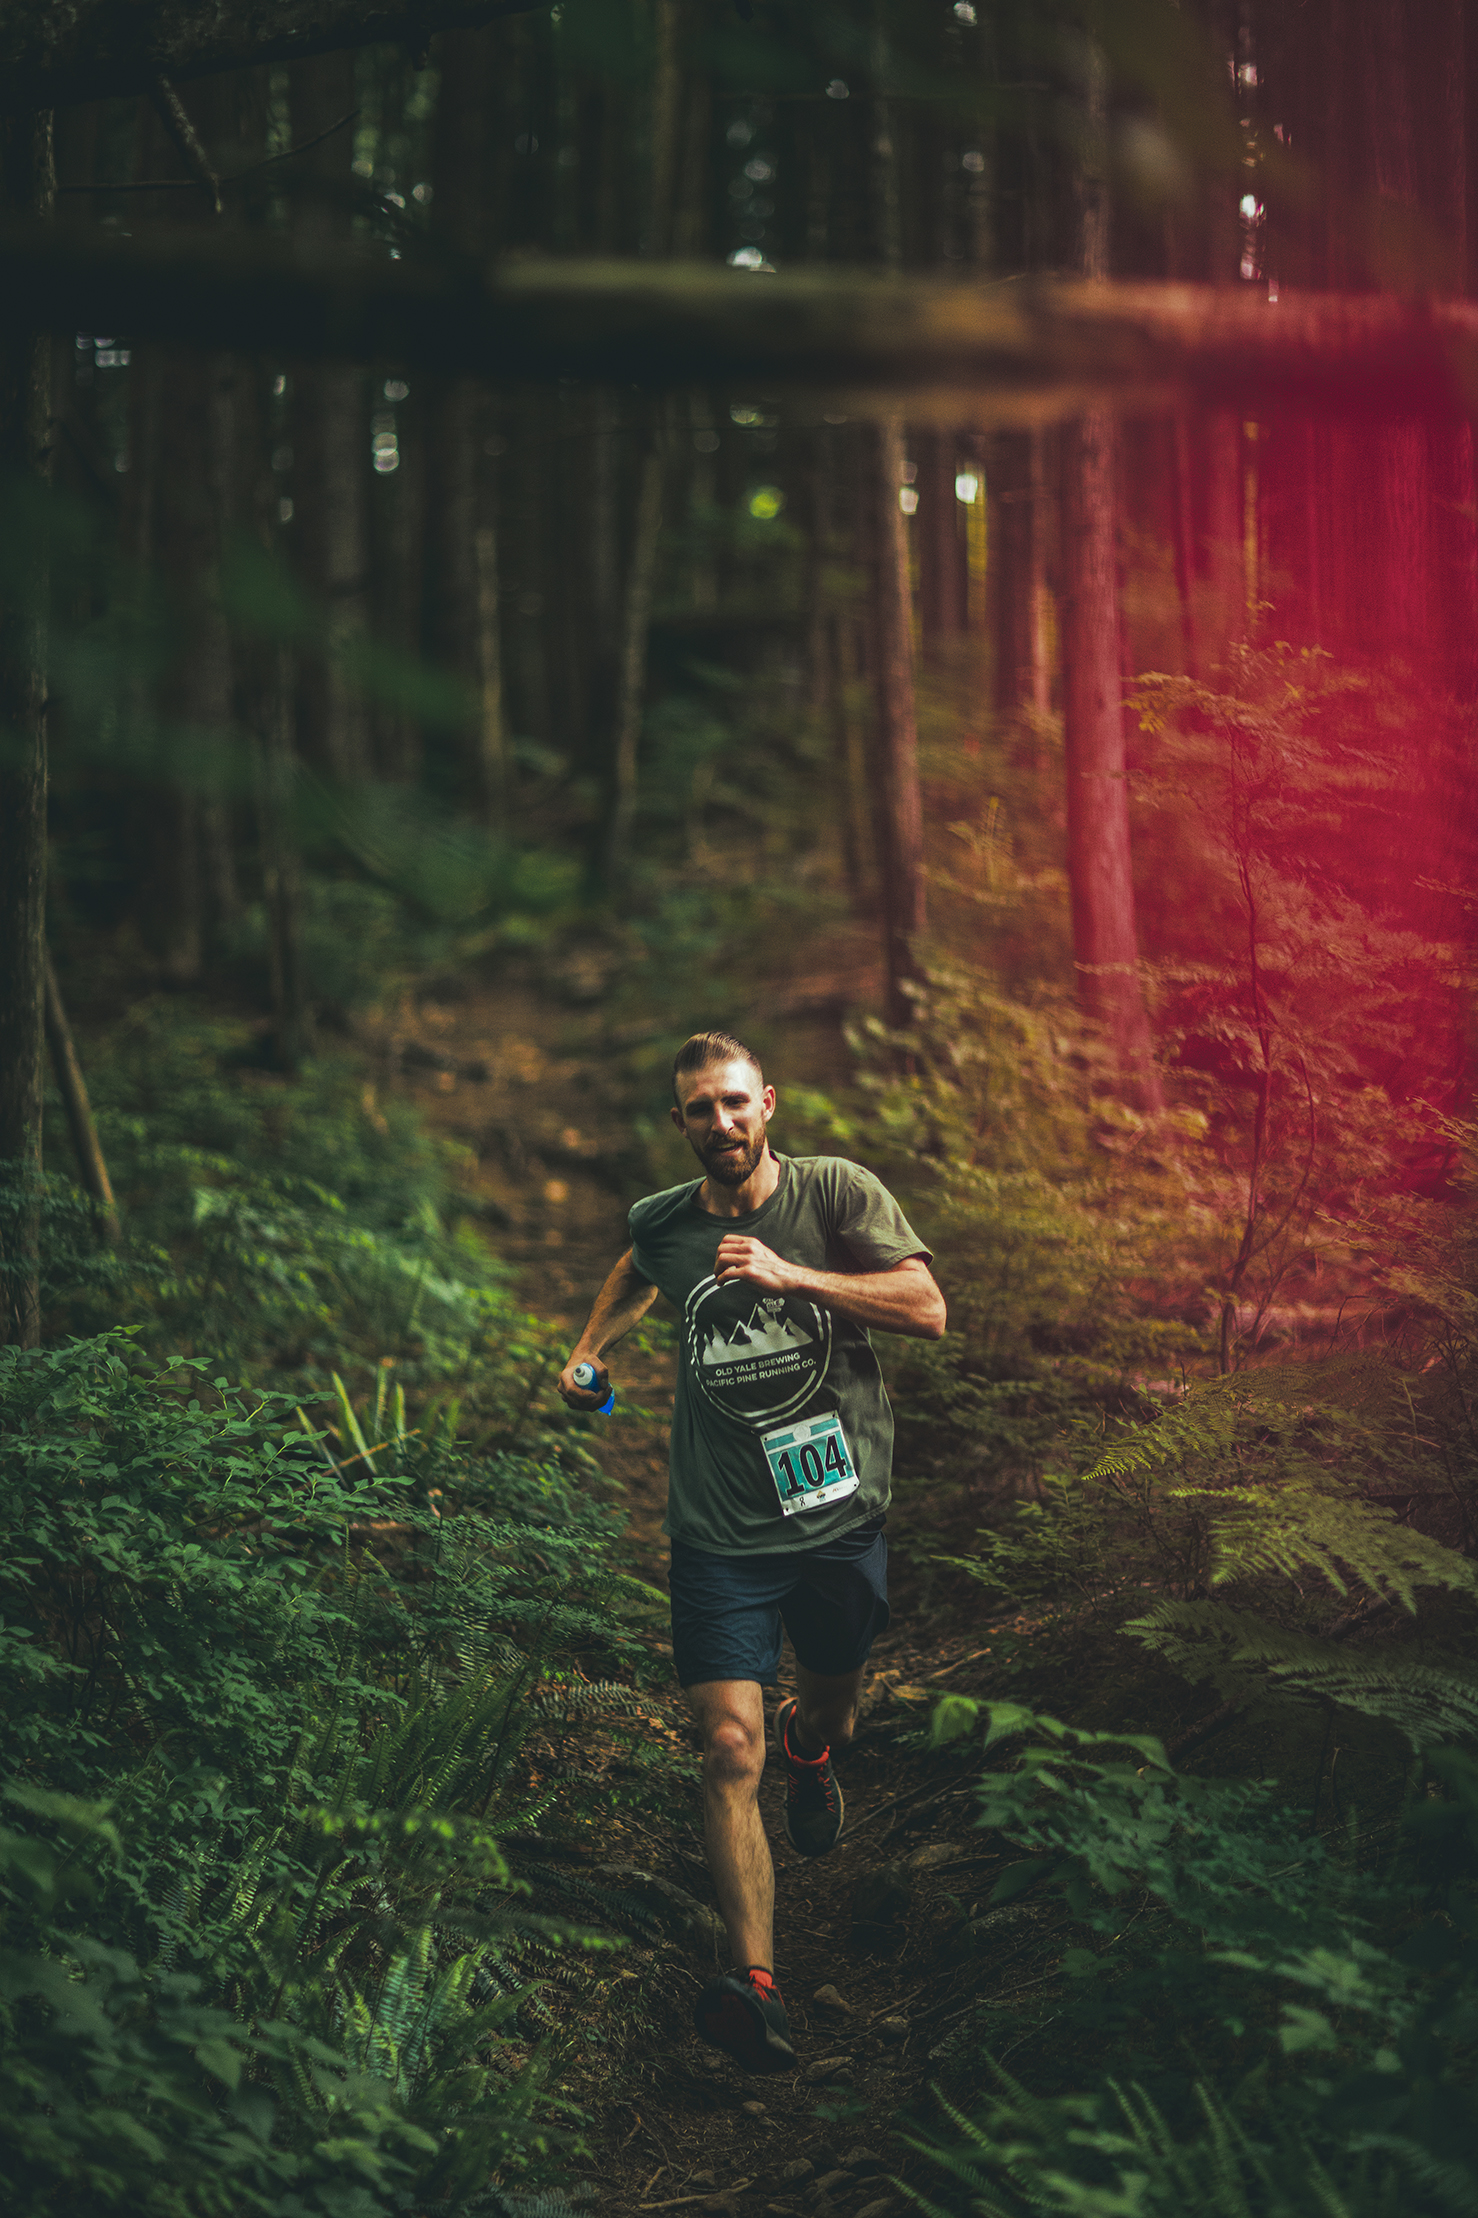 Fraser Valley Trail Races - Bear Mountain - IMG_1827 by Brice Ferre Studio - Vancouver Portrait Adventure and Athlete Photographer.jpg